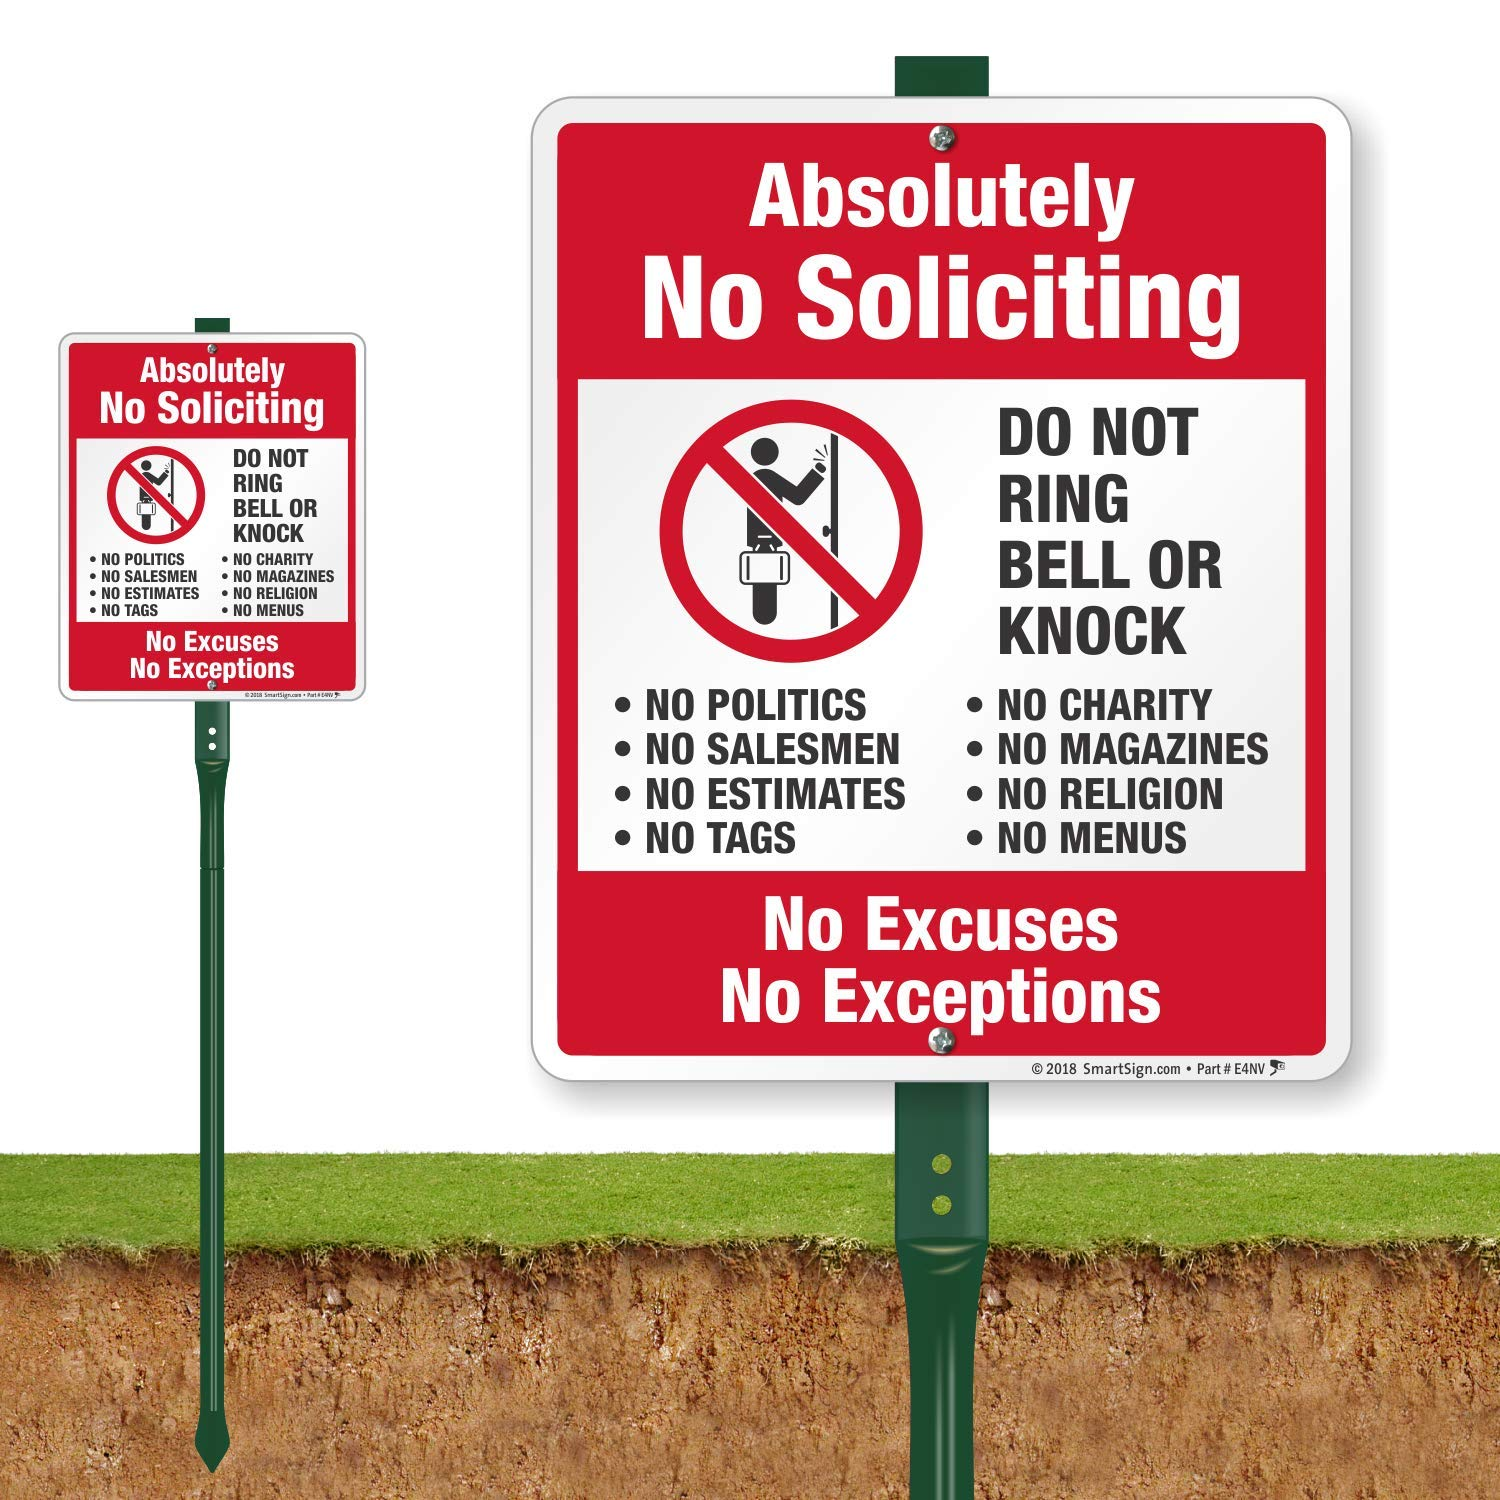 SmartSign ''Absolutely No Soliciting - Do Not Ring Bell Or Knock, No Excuses, No Exceptions'' Sign for Lawn | 12'' x 10'' Aluminum Sign with 3' Stake [New]